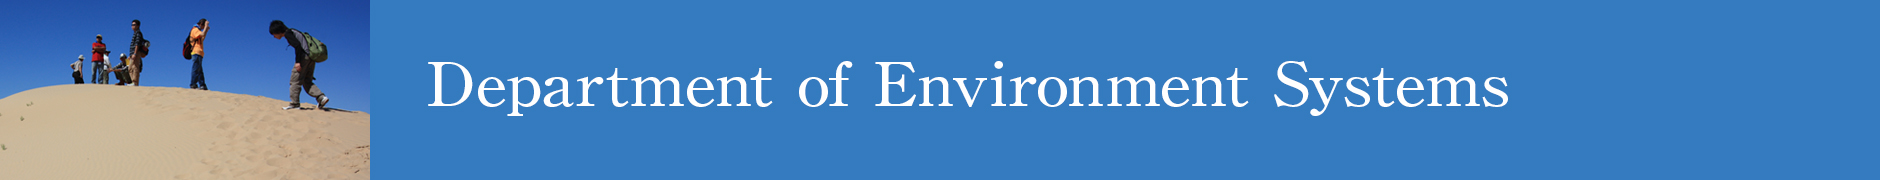 DEPARTMENT OF ENVIRONMENT SYSTEMS